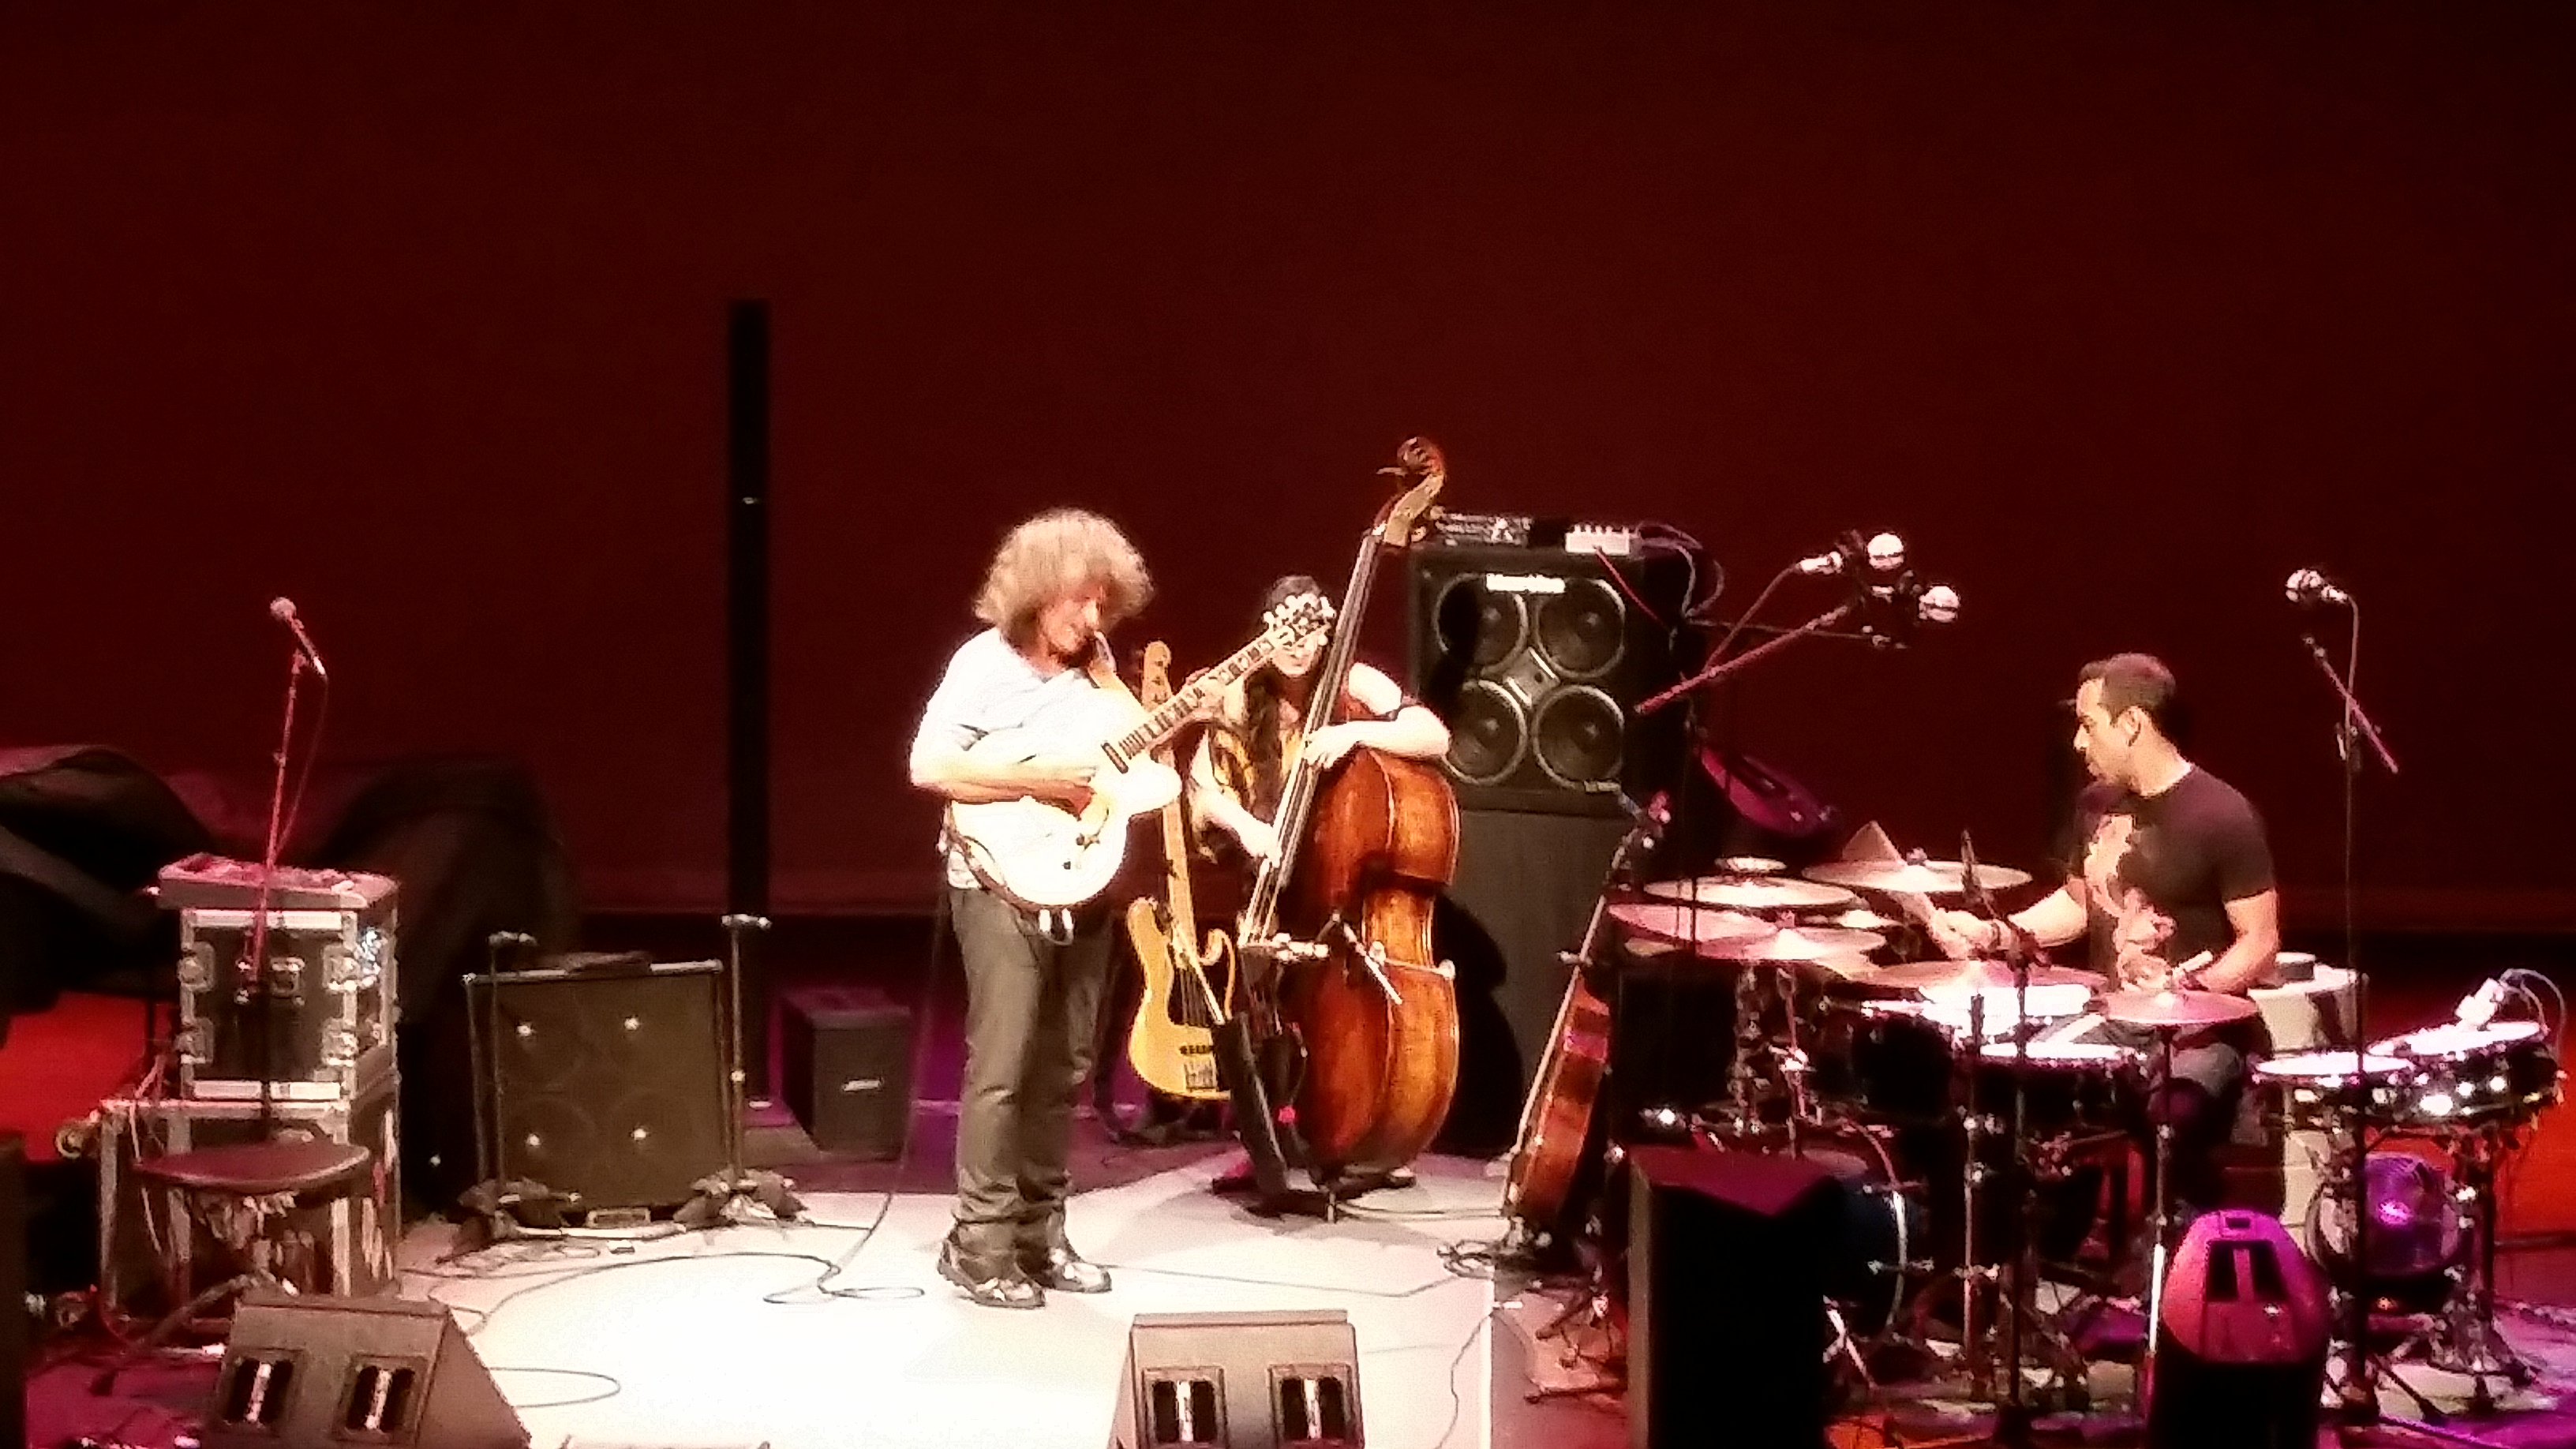 PatMetheny2016-09-16VirginiaPiperTheaterScottsdaleAZ (10).jpg